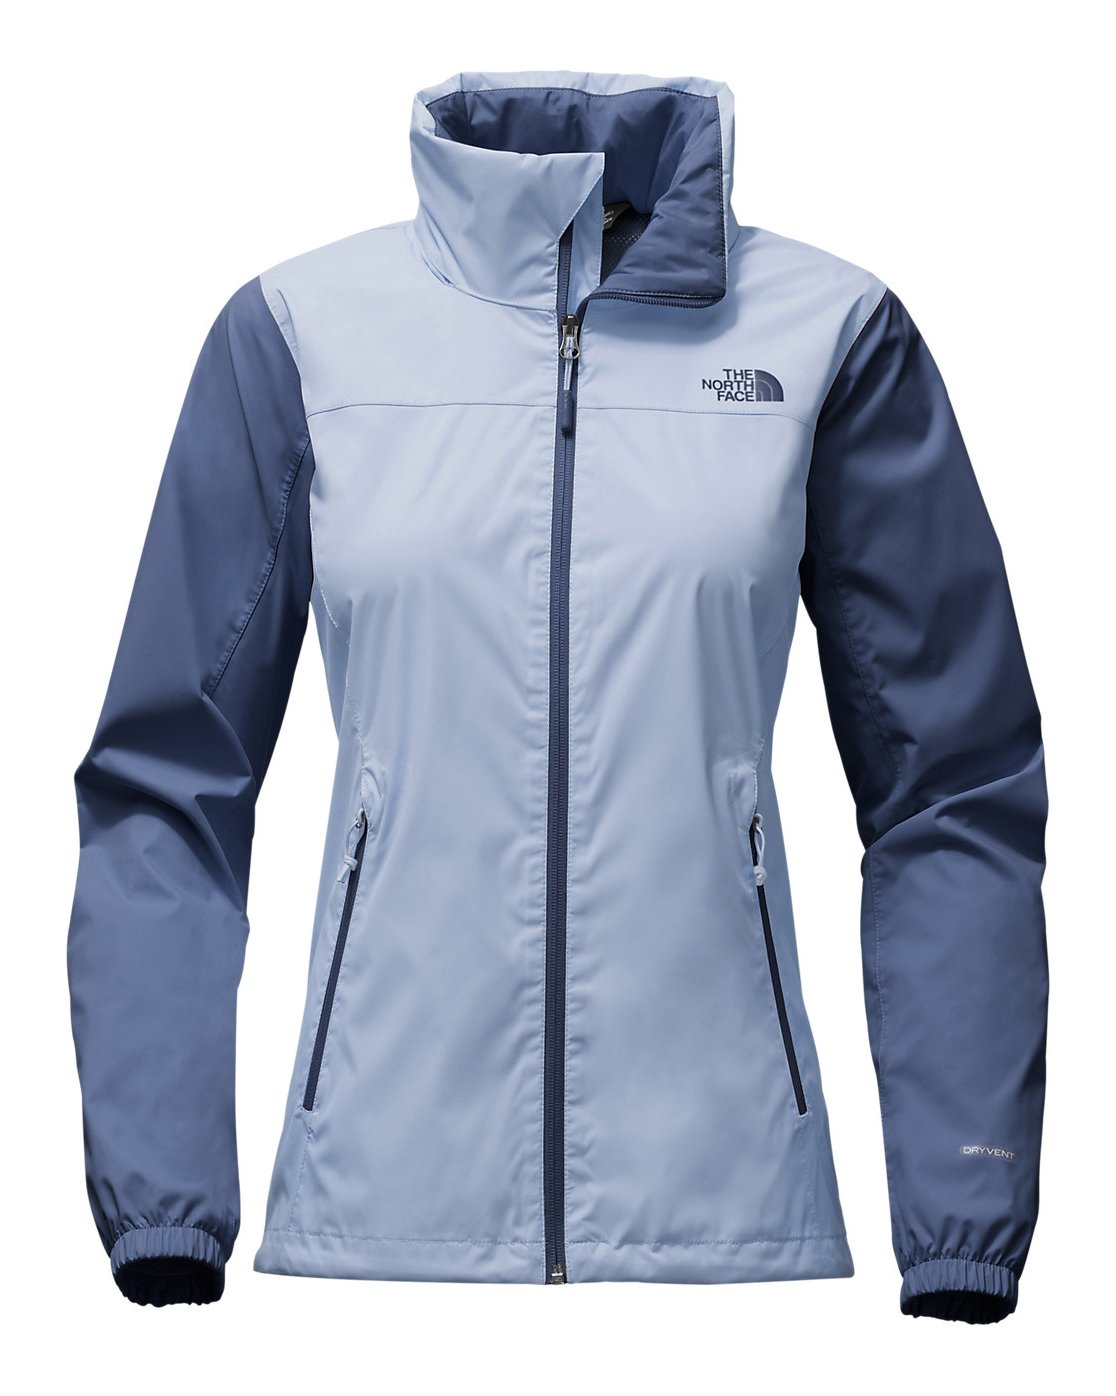 The North Face Womens Resolve Plus Jacket Chambray Blue/Coastal Fjord Blue XL